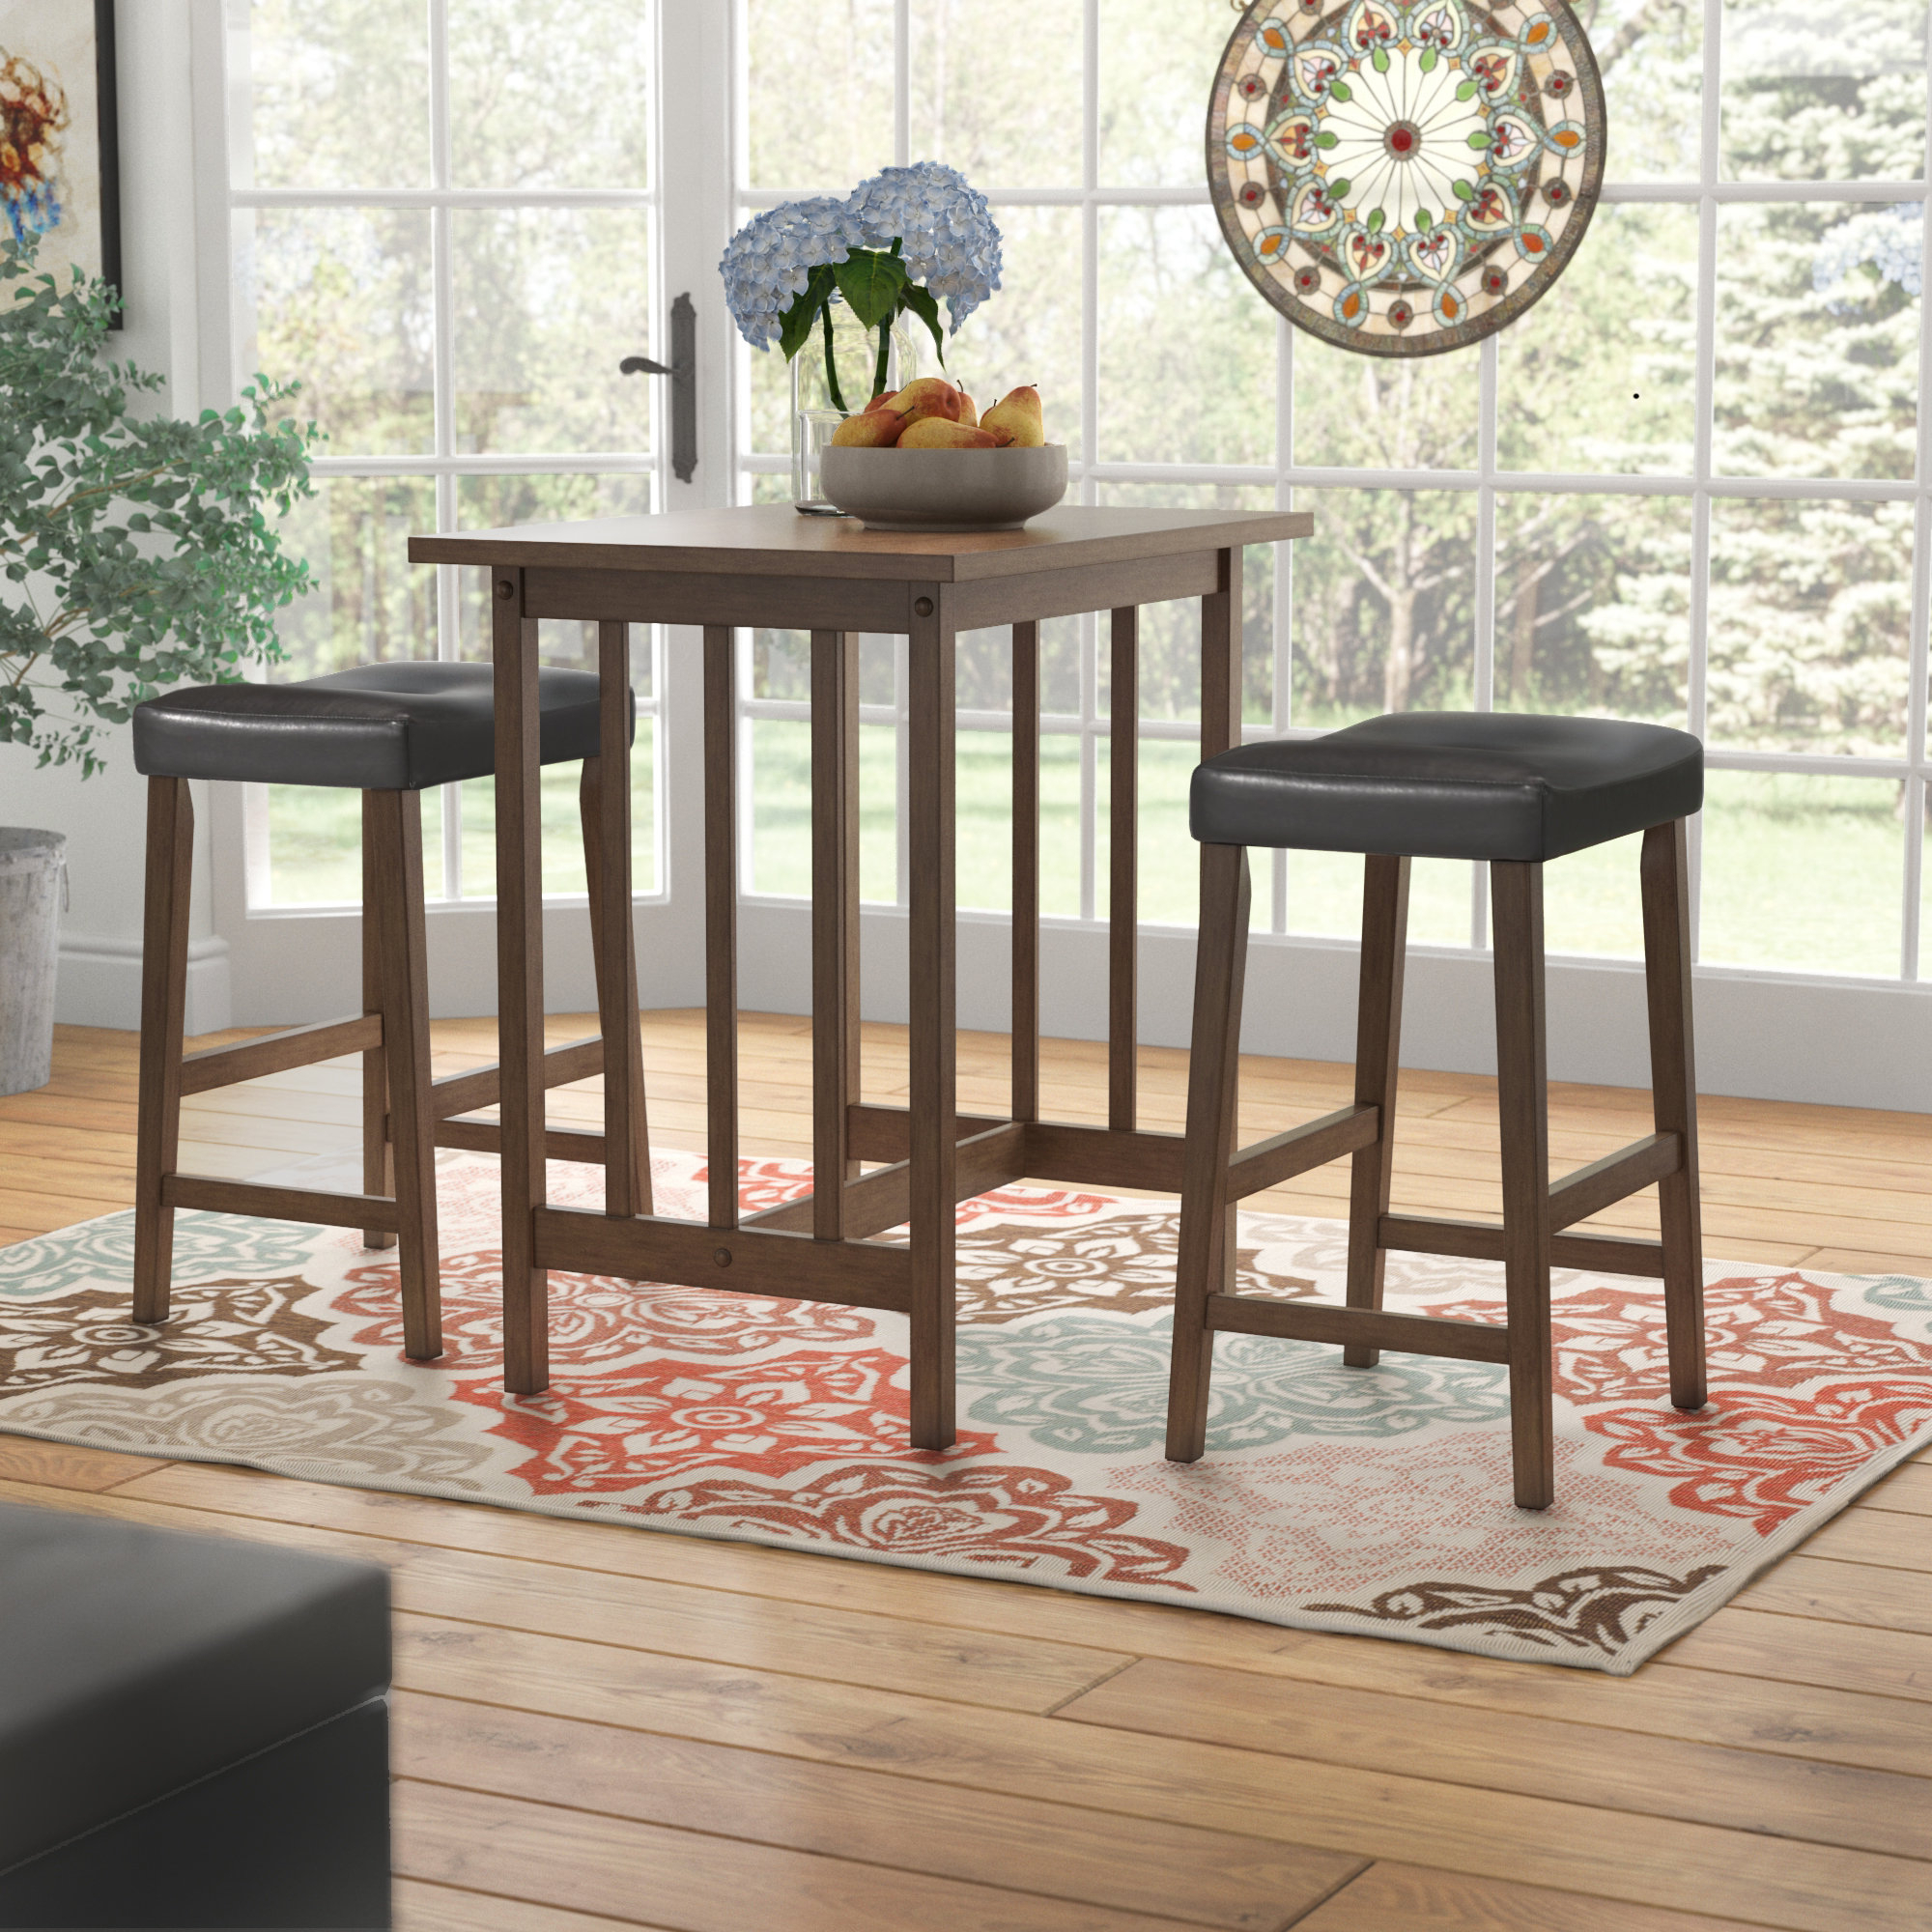 Newest Mitzel 3 Piece Dining Sets Inside Red Barrel Studio Hood Canal 3 Piece Dining Set & Reviews (View 5 of 25)